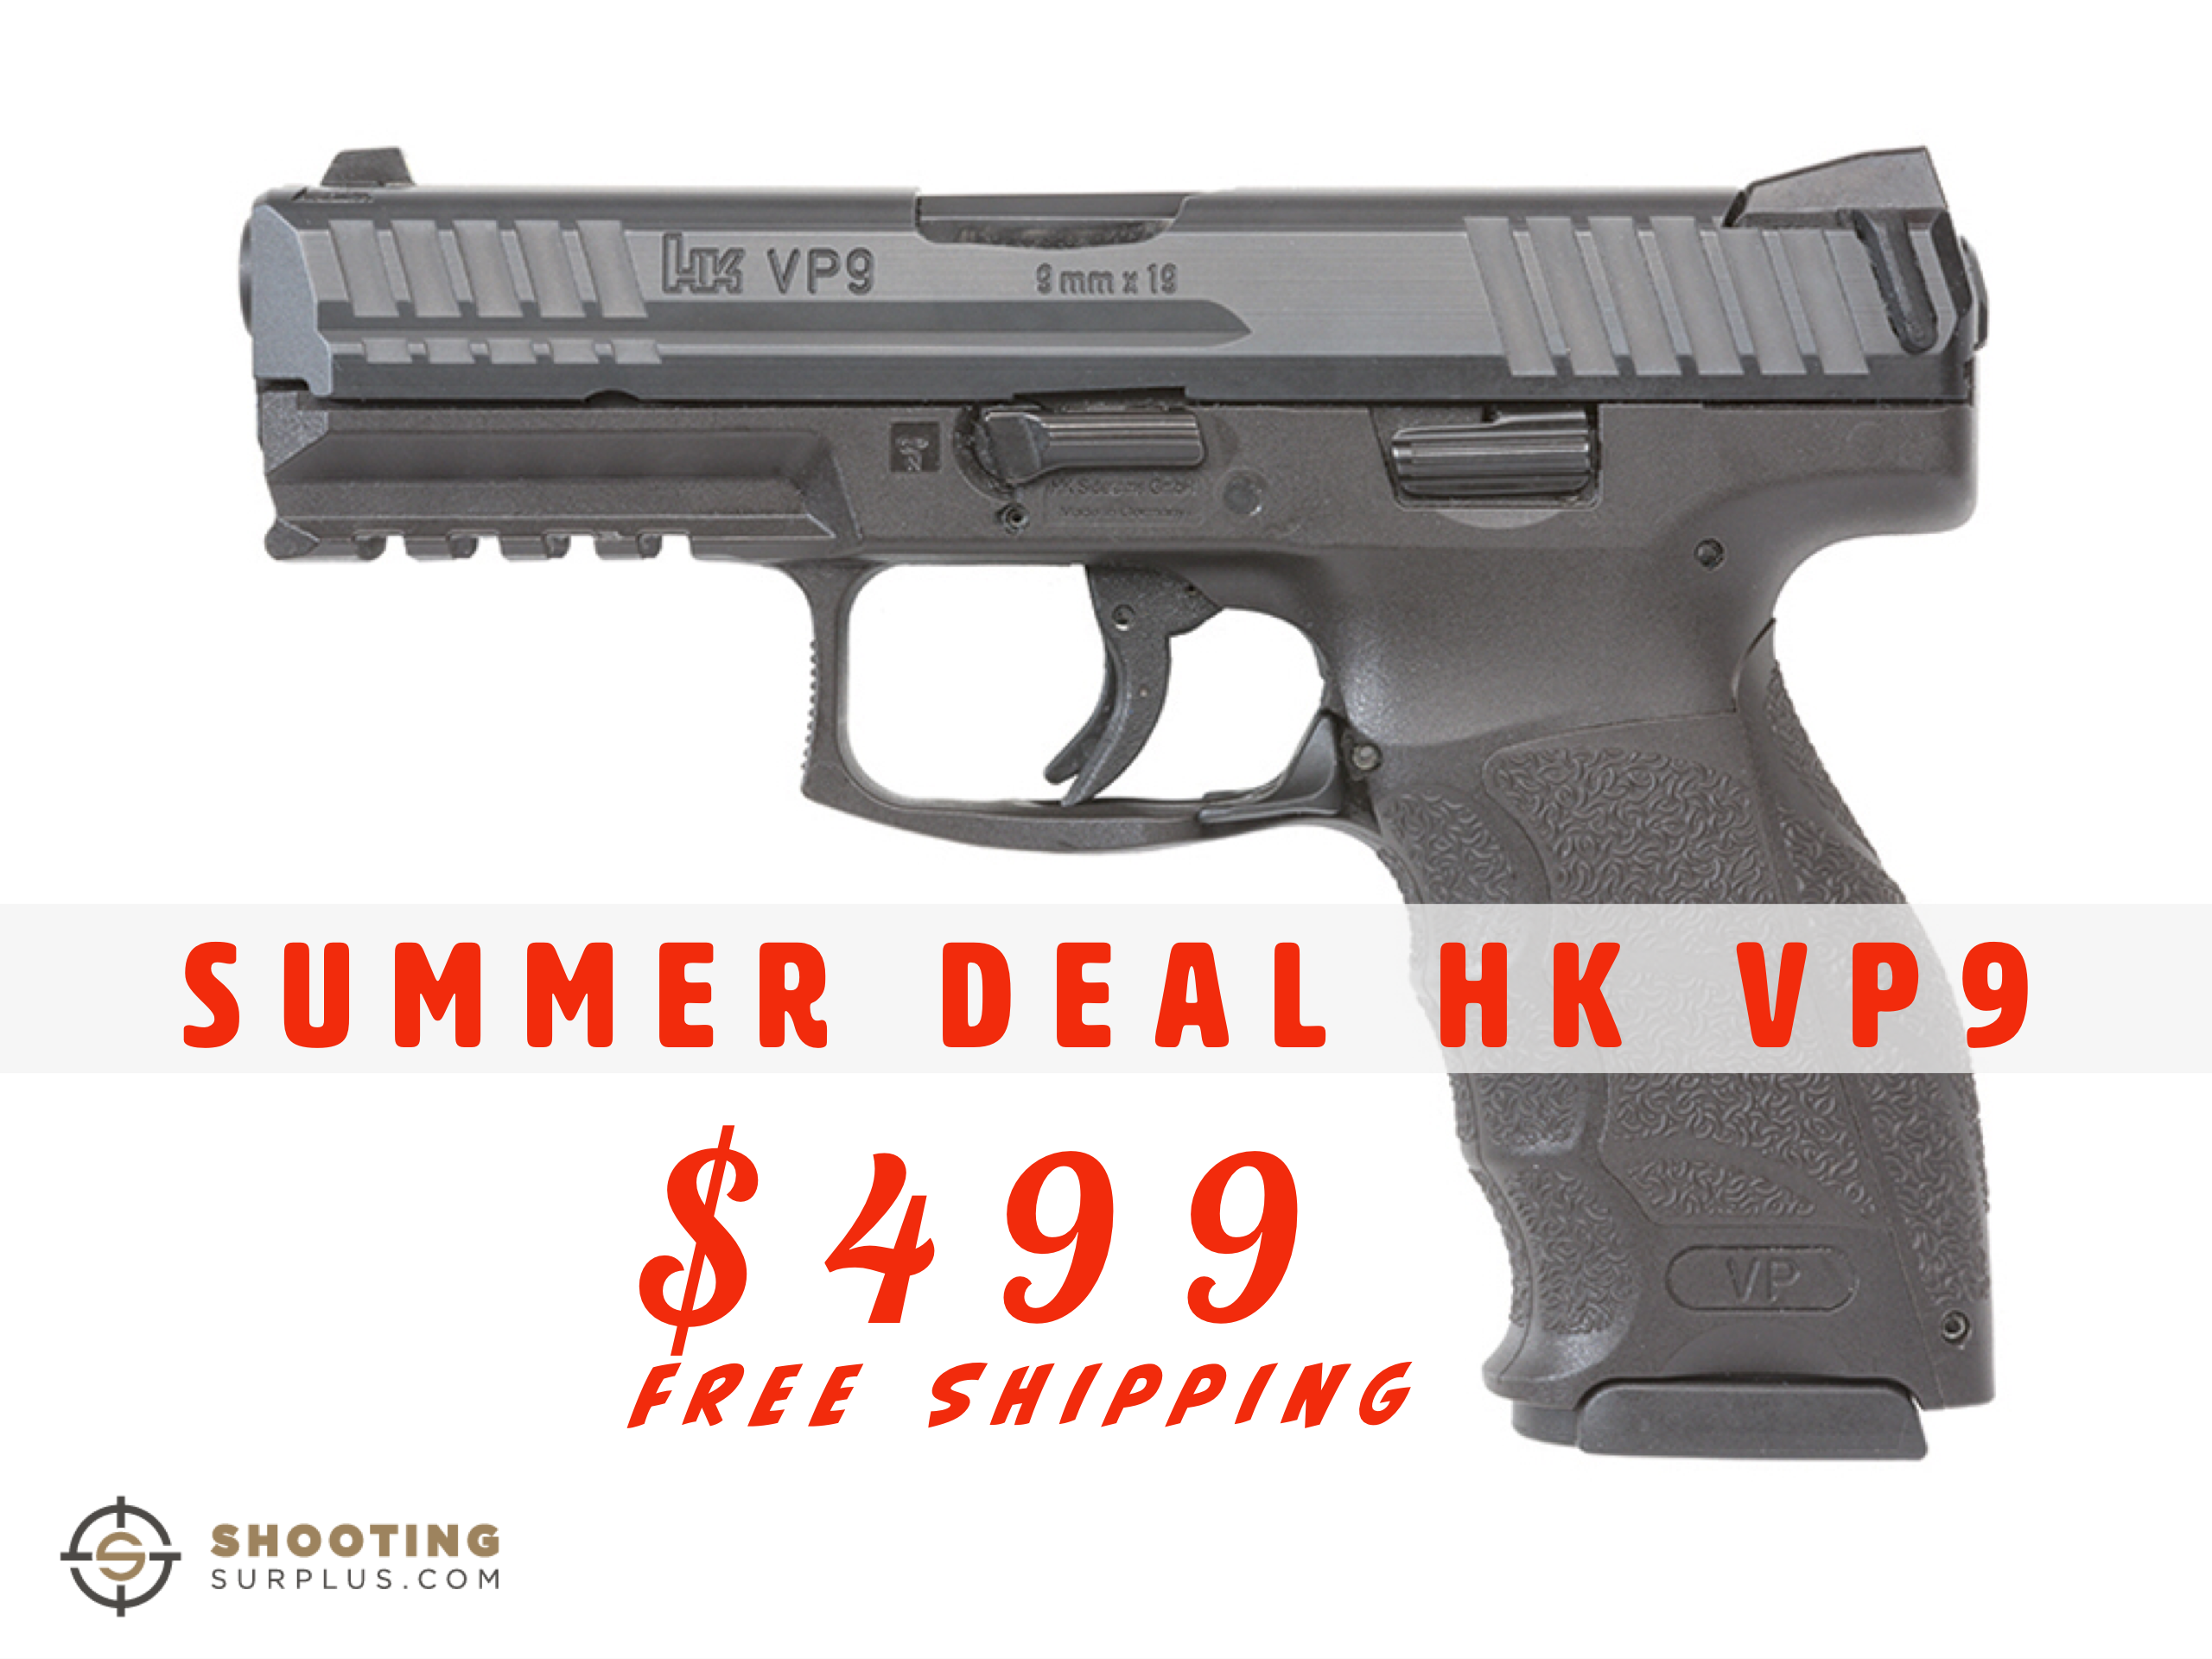 H&k vp9 9 / h&k vp9 le 9-photo-jun-26-10-55-06-am.png